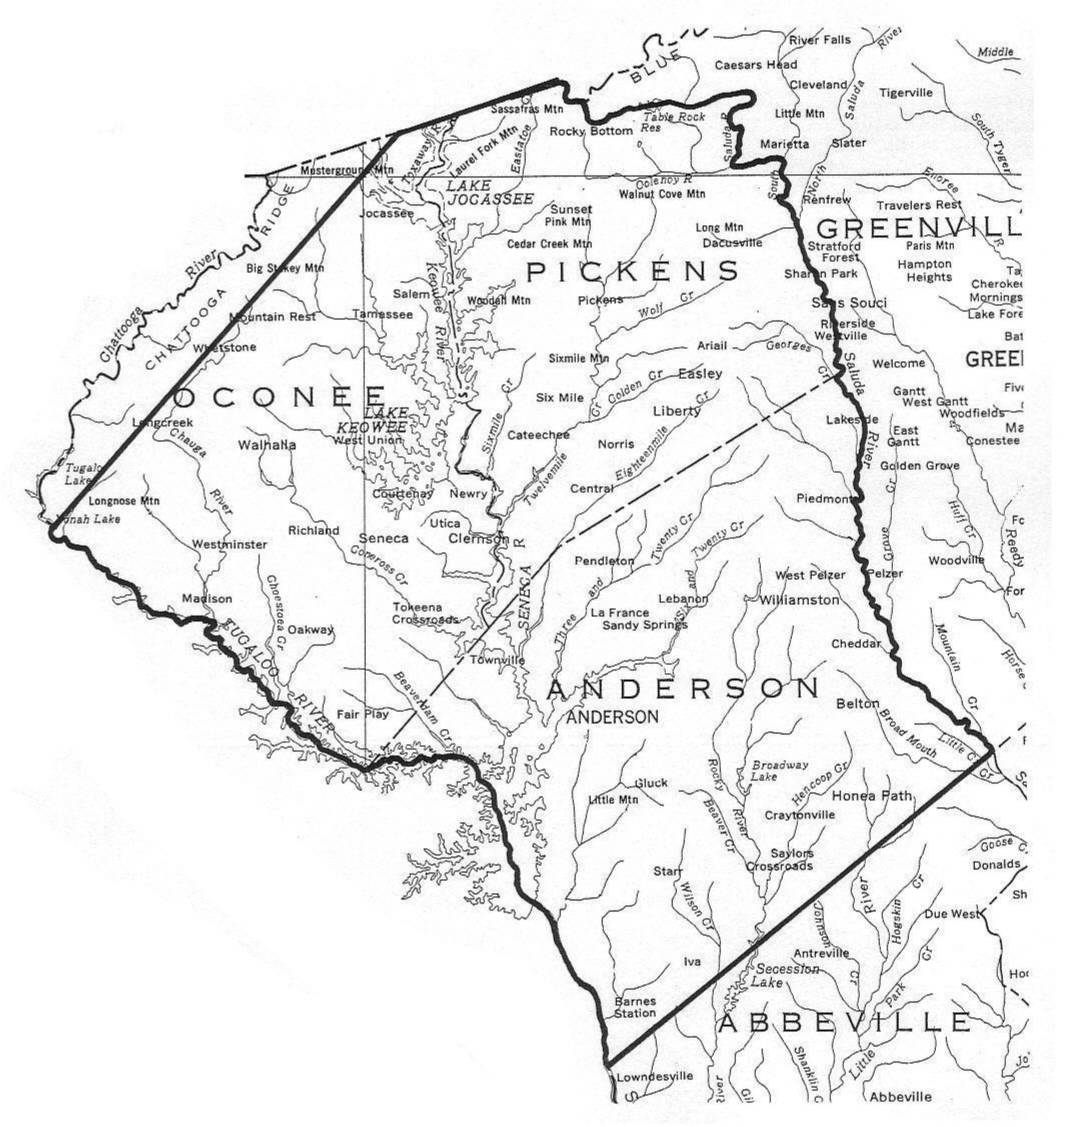 oconee county sc map with County Map Of Sc on Photostream also Fair play further Cnty besides Lake Wylie additionally Town Of Clover.